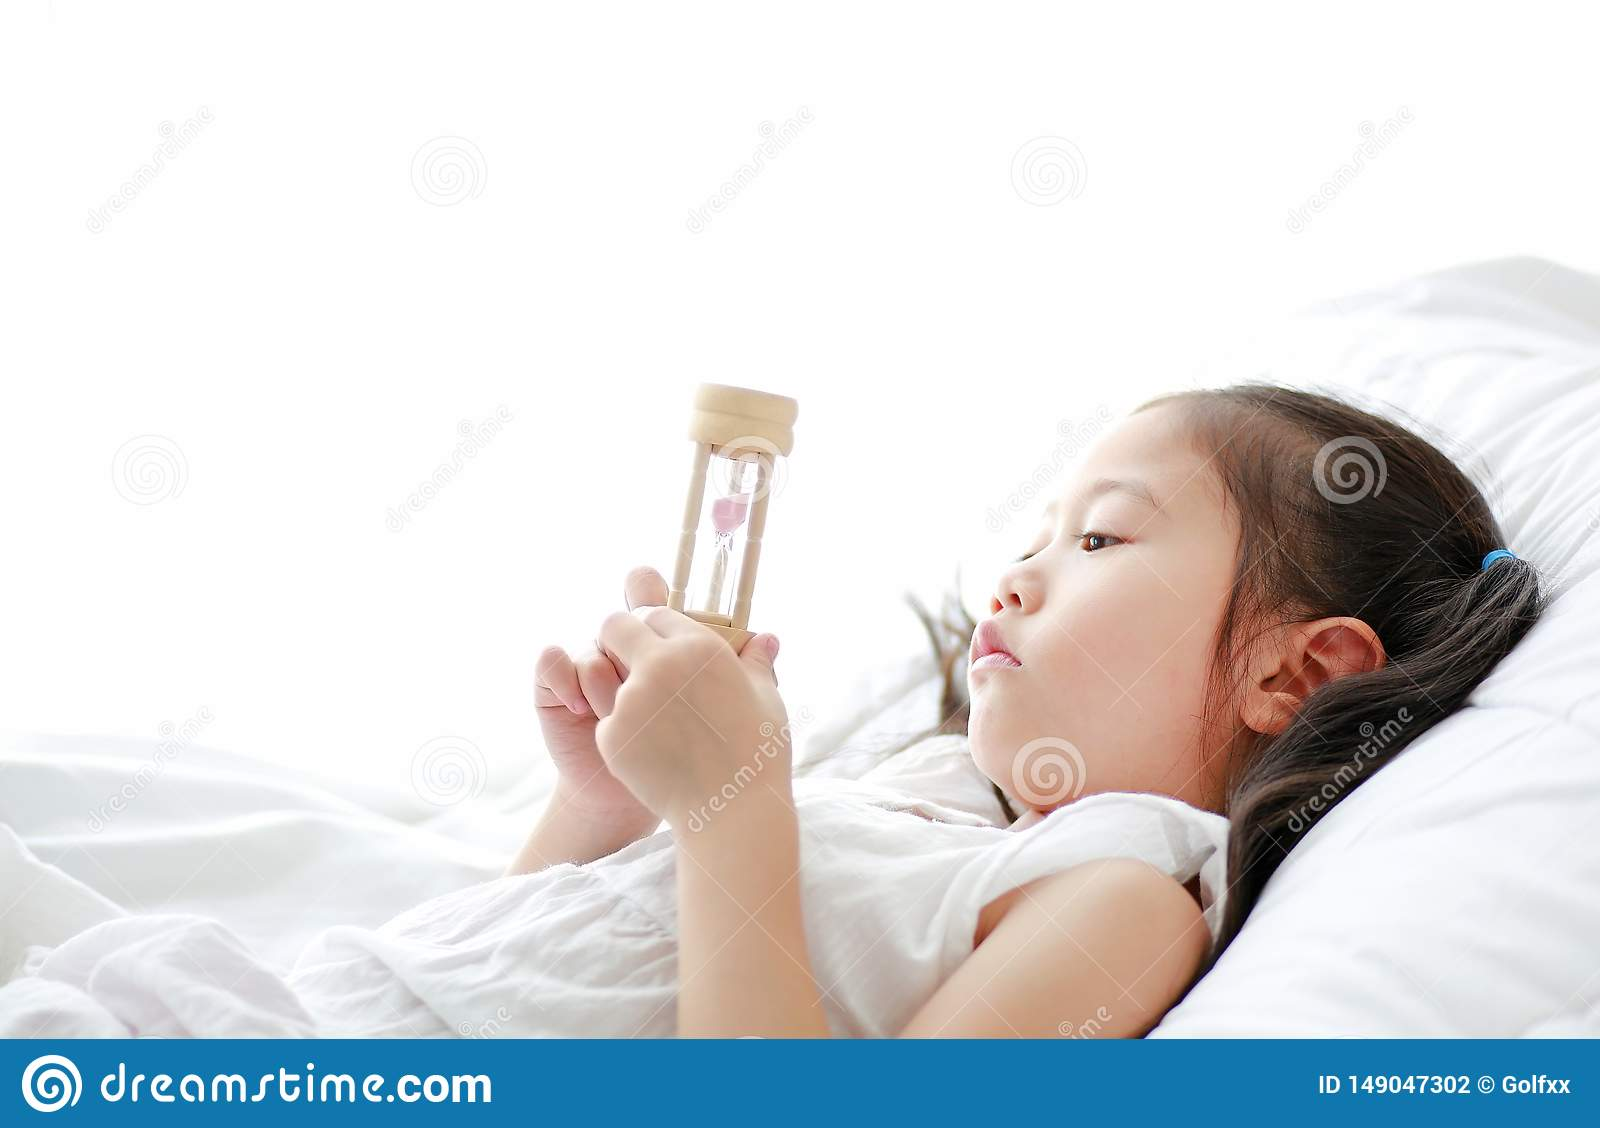 Portrait of little Asian girl looking at hourglass in hand lying on bed at home. Waiting times with sandglass